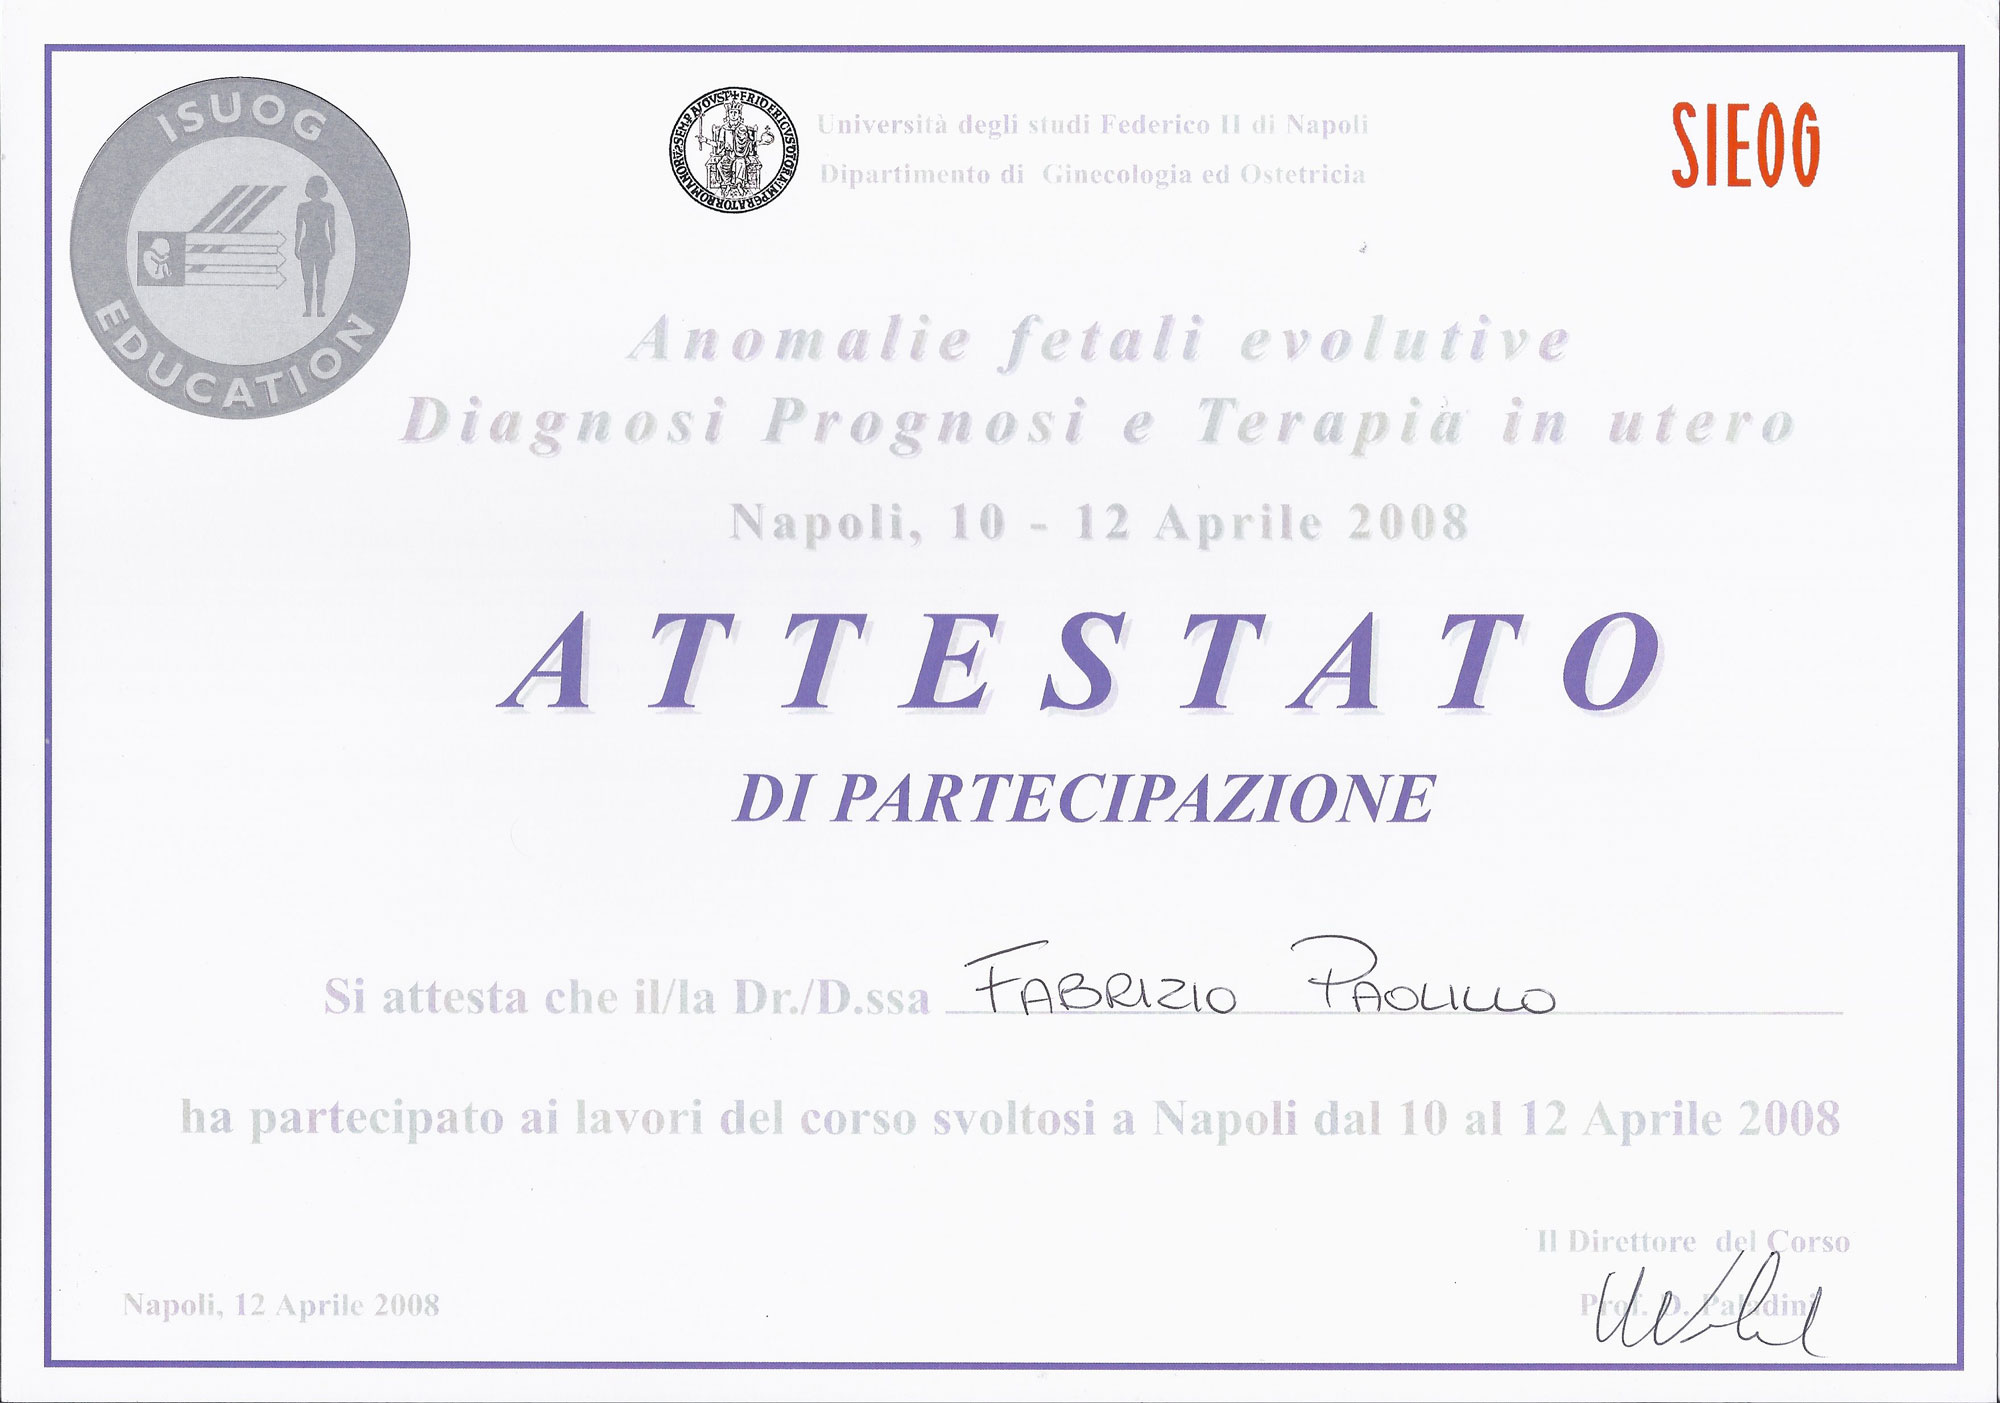 Anomalie Fetali Evolutive - Diagnosi Prognosi e Terapia in utero